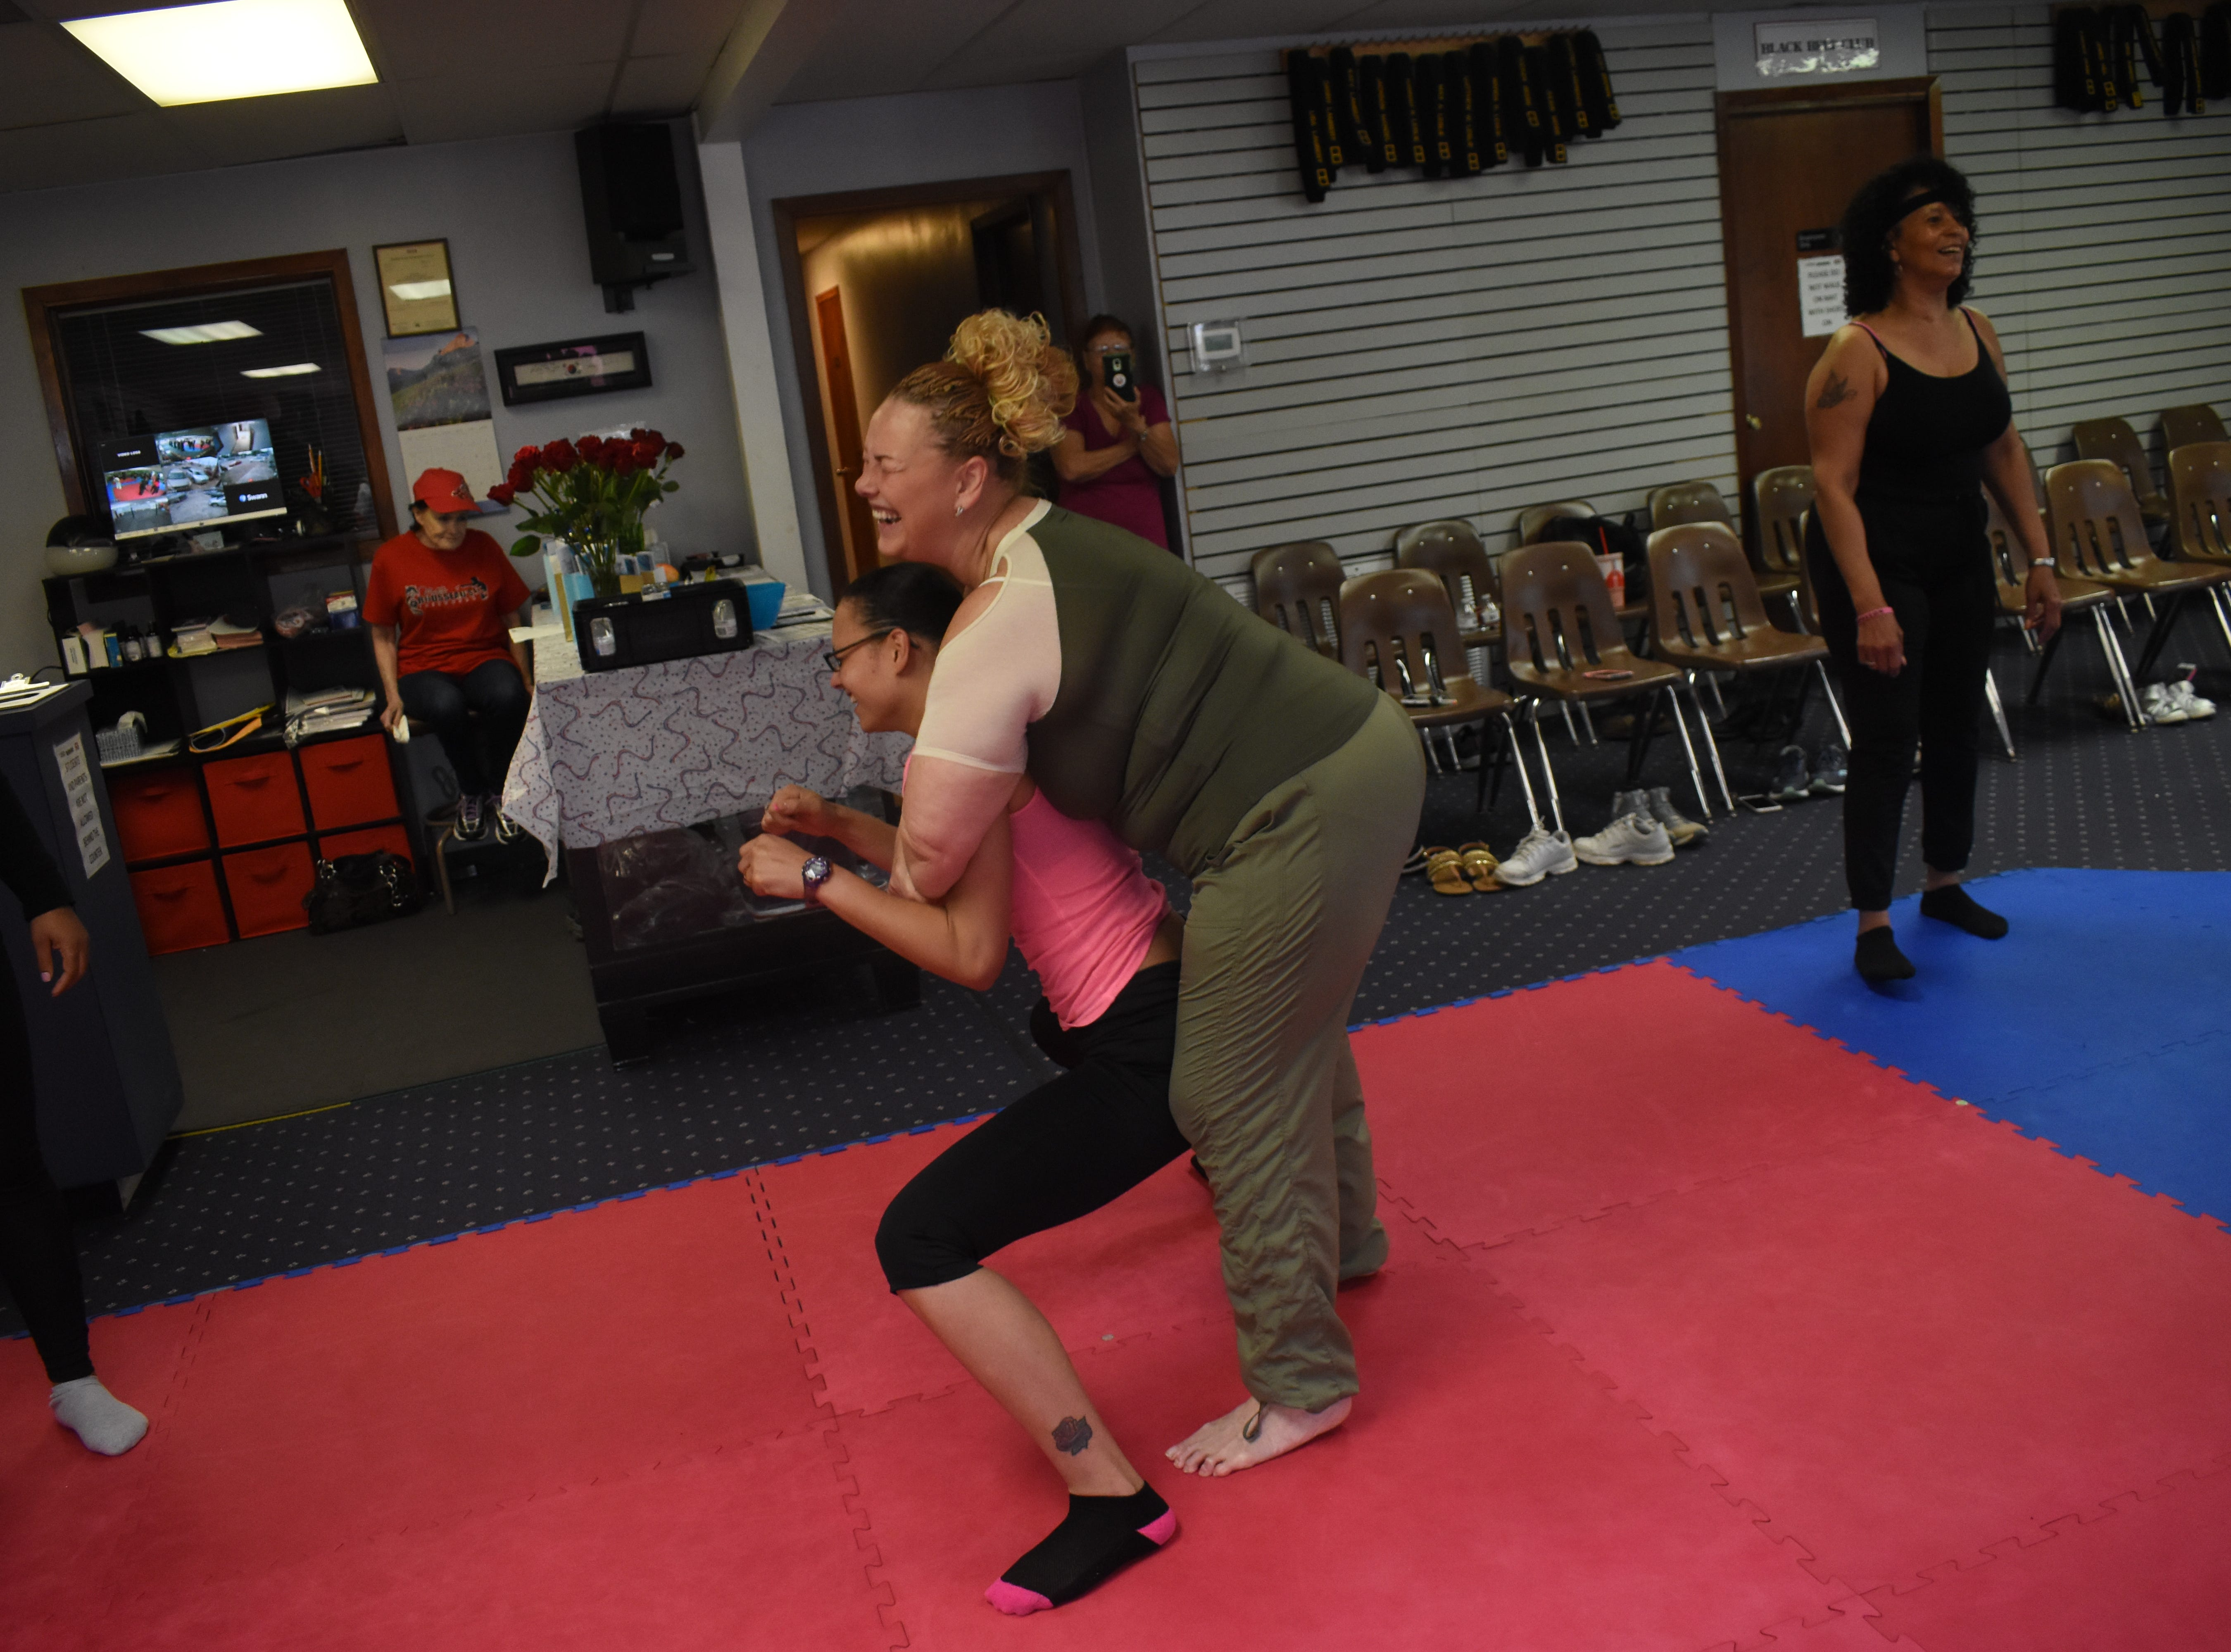 """Carol Rousseau, owner of Master Rousseau's Taekwondo, and a few of her instructors conducted a free women's self-defense workshop held for women Saturday for Mother's Day. Rousseau has been holding a yearly Mother's Day self-defense workshop since 2015. """"Everybody learned the basics,"""" said Rousseau, such as how to use their elbows, knees, how to kick and how to use the heels of their palms. """"They learned how to get out of chokeholds, bearhugs,"""" she said. """"They learned how to get out of headlocks."""" She wanted everyone to have a good time and learn some basic self-defense techniques. """"I hope they never get attacked,"""" said Rousseau. """"But if they do, they can at least know how to get out of it."""" Master Rousseau's offers at 6:45 p.m. self-defense classes on Monday and Wednesdays. For more information, call (318) 443-8066."""